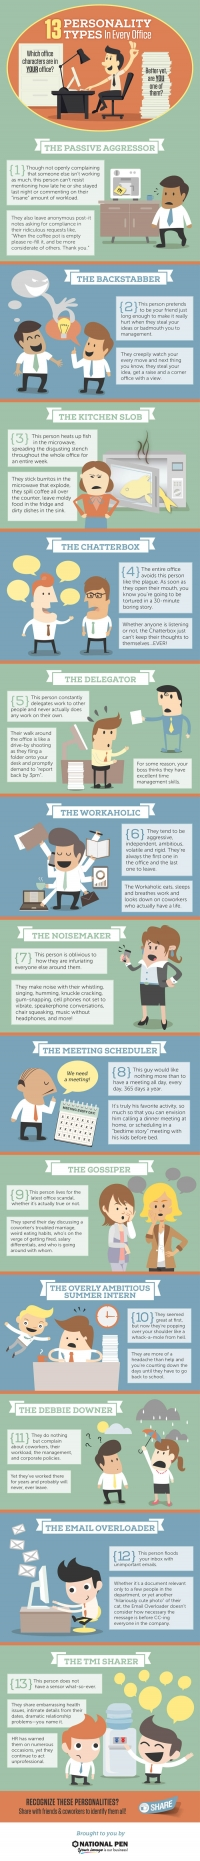 13 Office Personality Types In Every Office